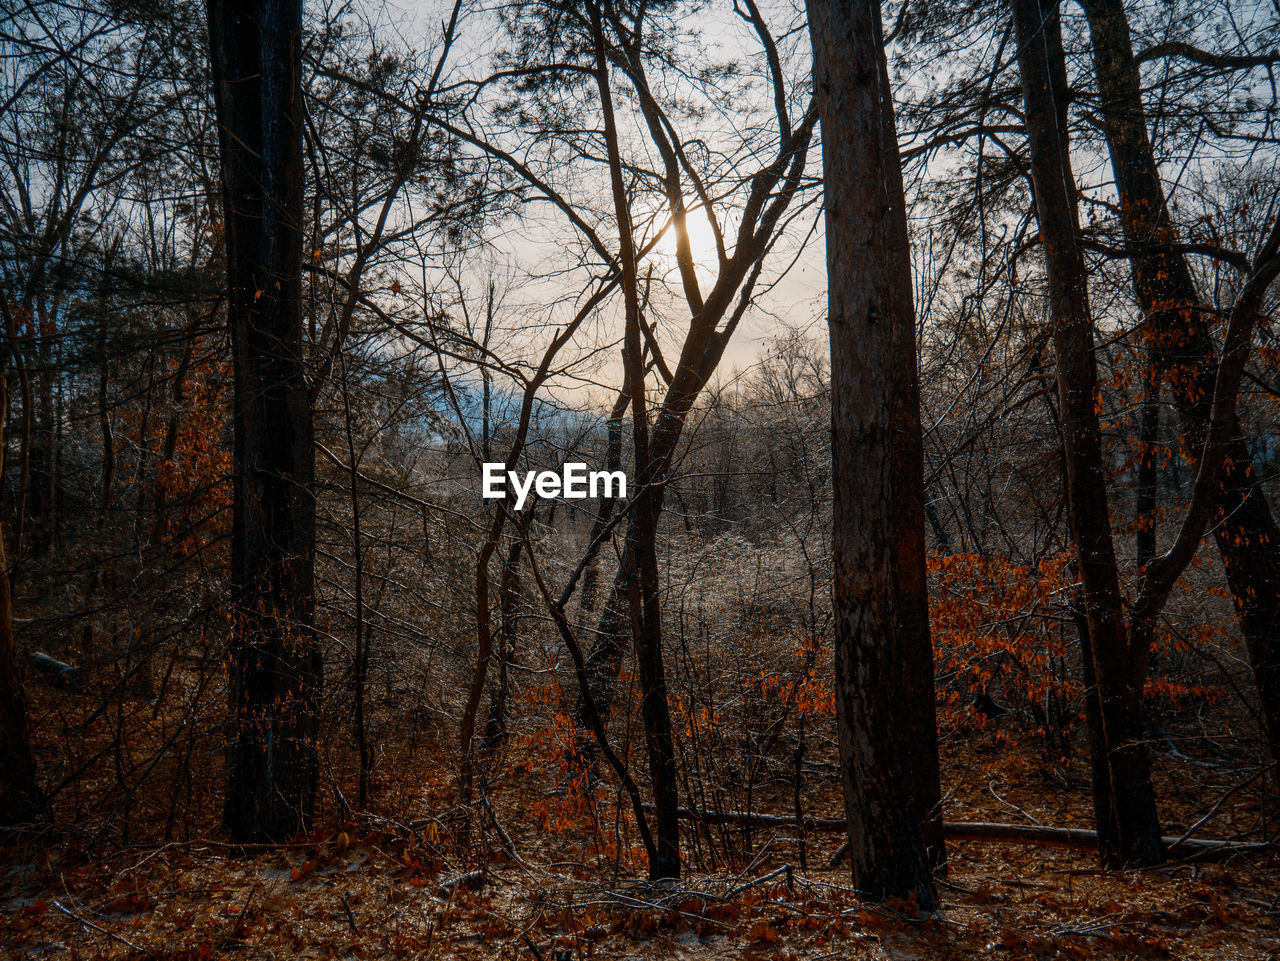 forest, tree, tree trunk, bare tree, autumn, woodland, nature, forest fire, tranquility, no people, day, outdoors, branch, beauty in nature, tree area, bleak